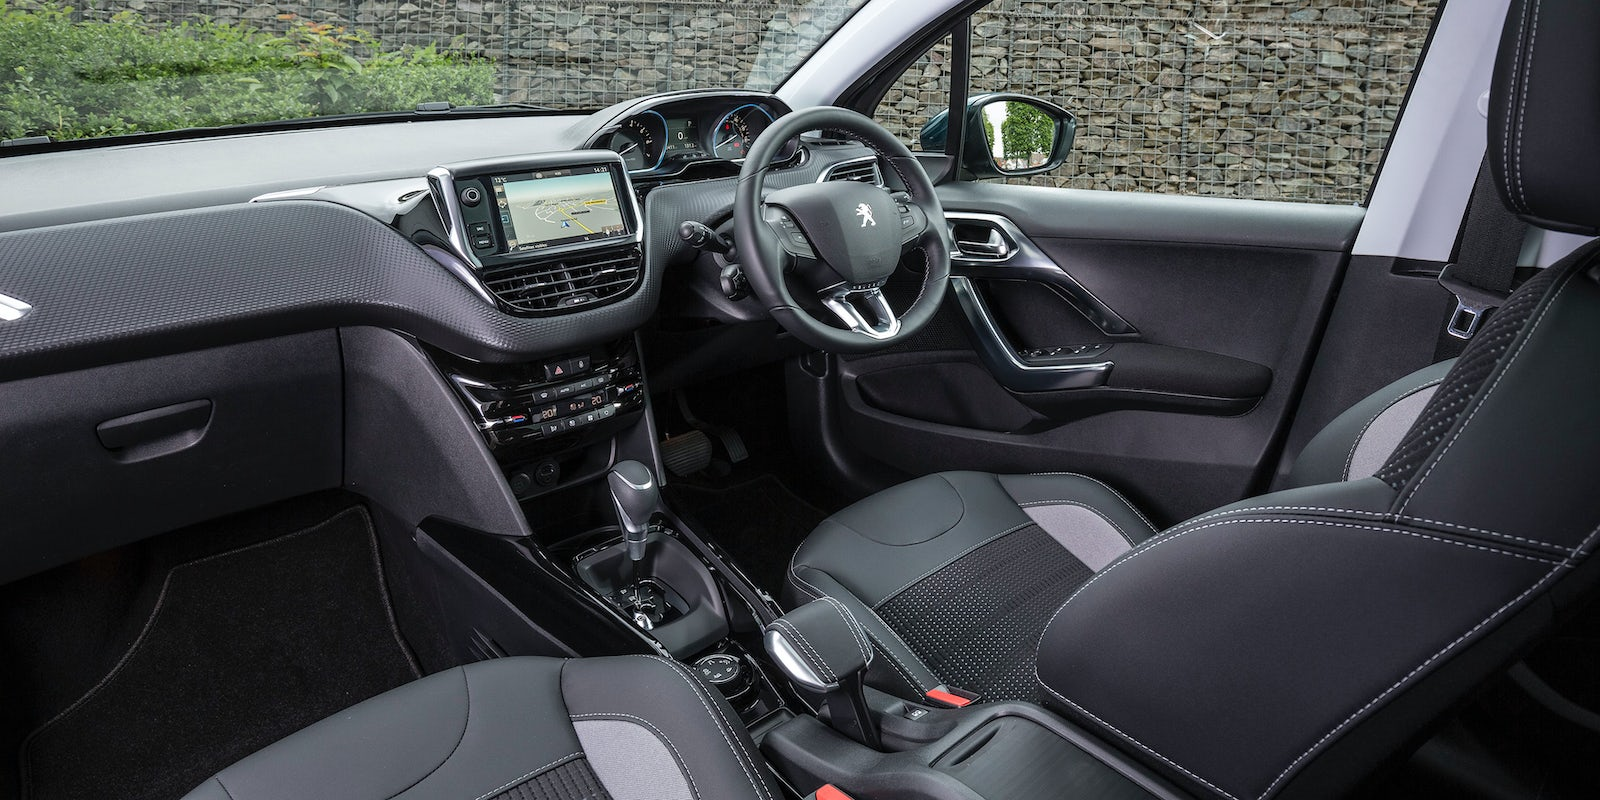 Peugeot 2008 Interior & Infotainment | carwow